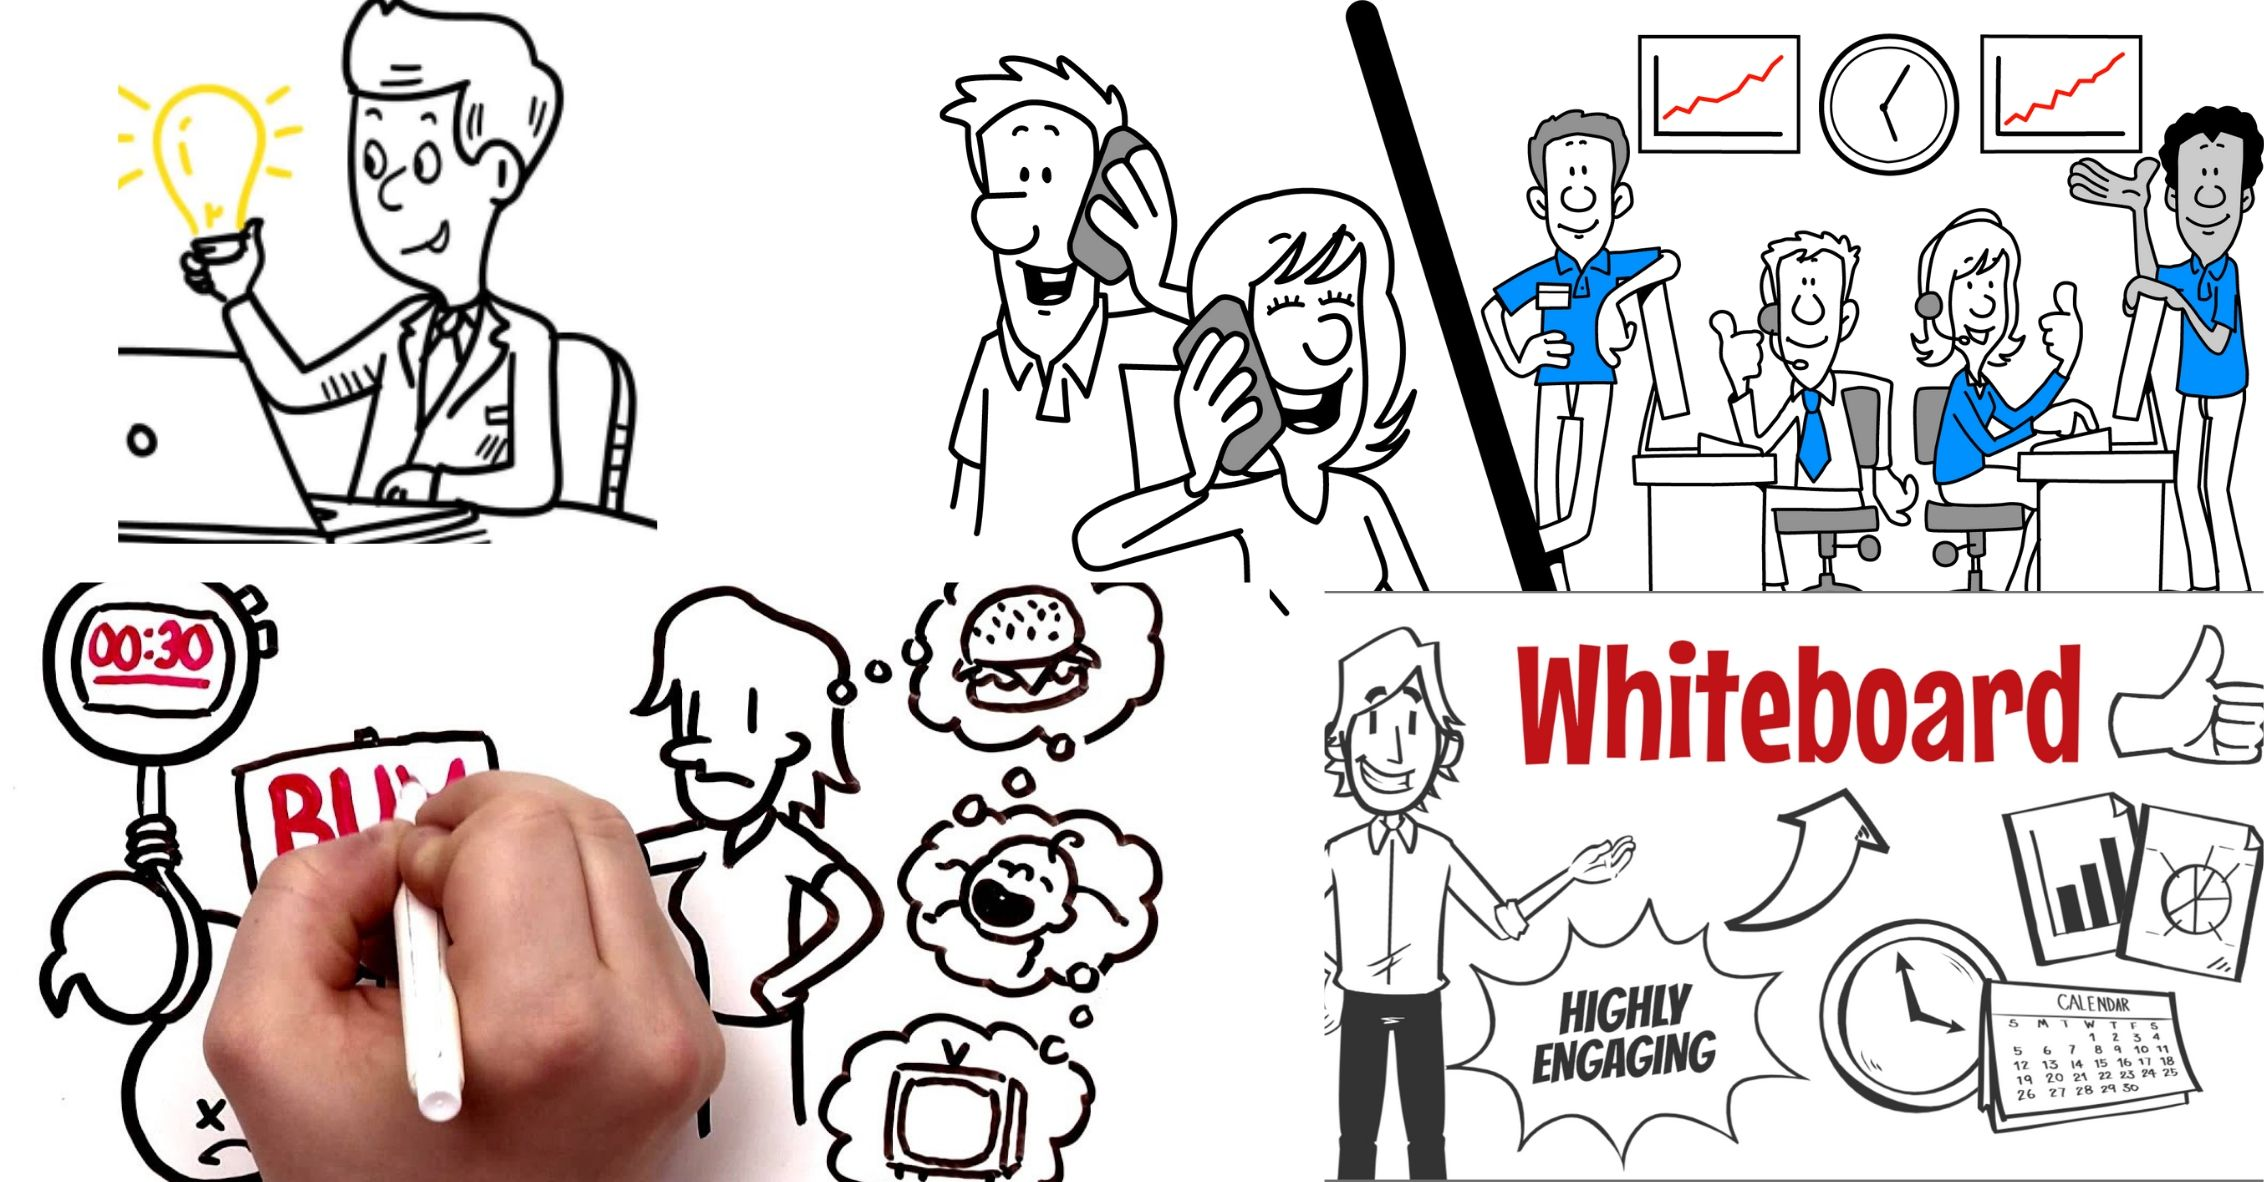 I Will Create An Amazing Whiteboard Animation For Your Business limited promotion